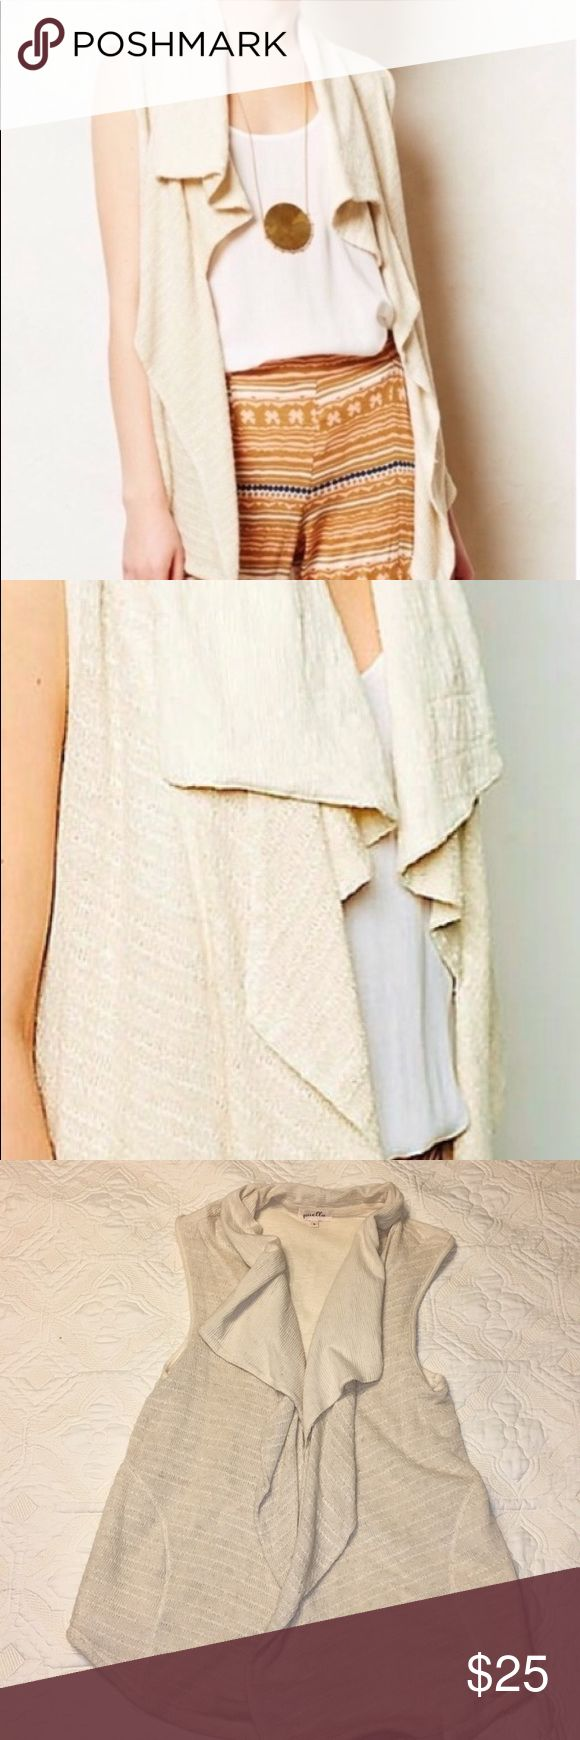 Anthropologie open, cream vest. Puella branded open vest from a Anthropologie. Lightweight knit material. Longer and looser in front with two side pockets. Great for all seasons! Good as new! Anthropologie Jackets & Coats Vests